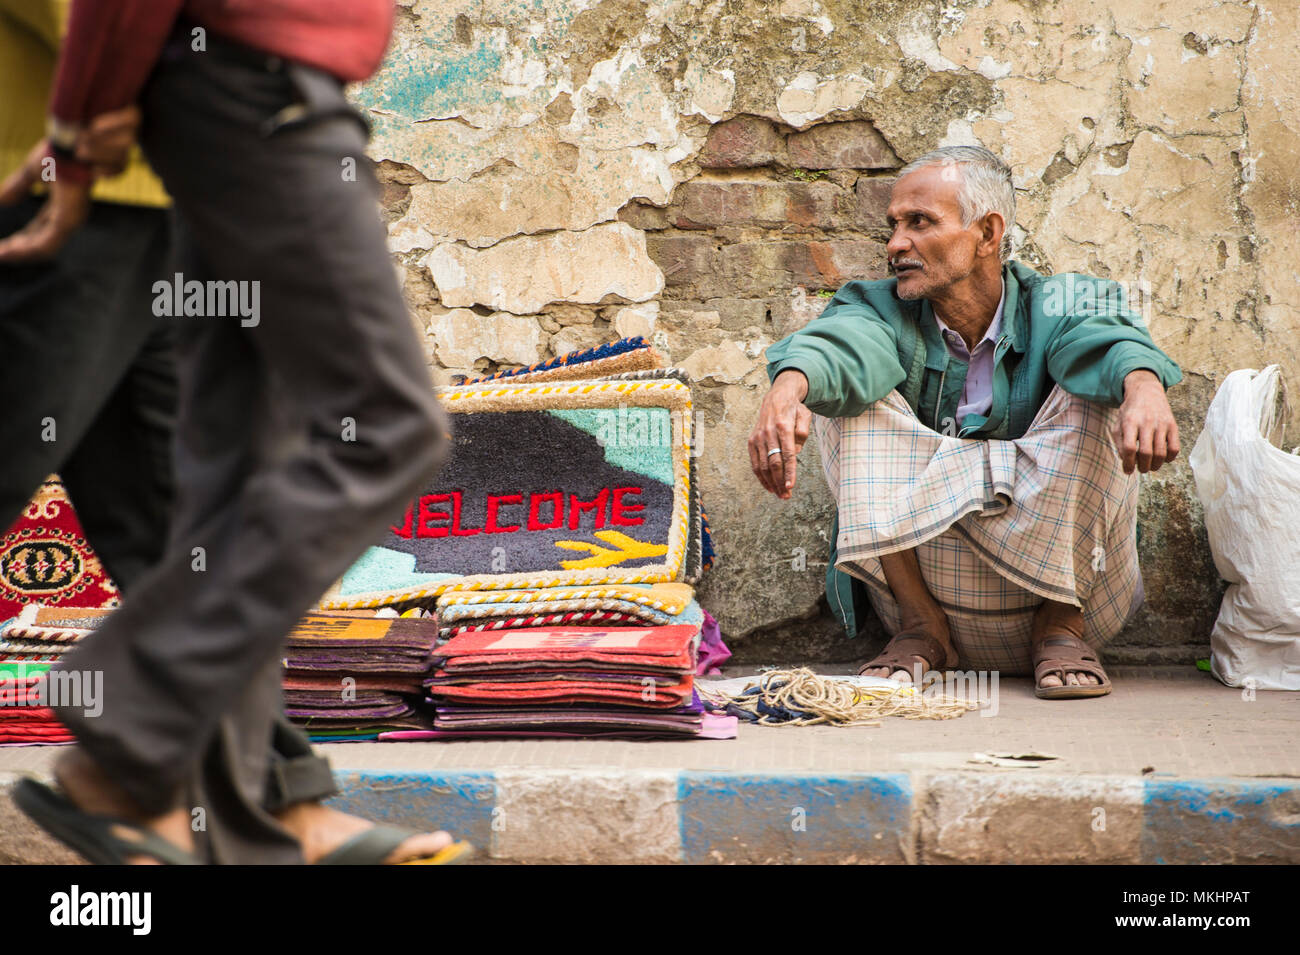 KOLKATA - INDIA - 21 JAN 2018 An abusive vendor is selling carpets on the streets of Calcutta. - Stock Image